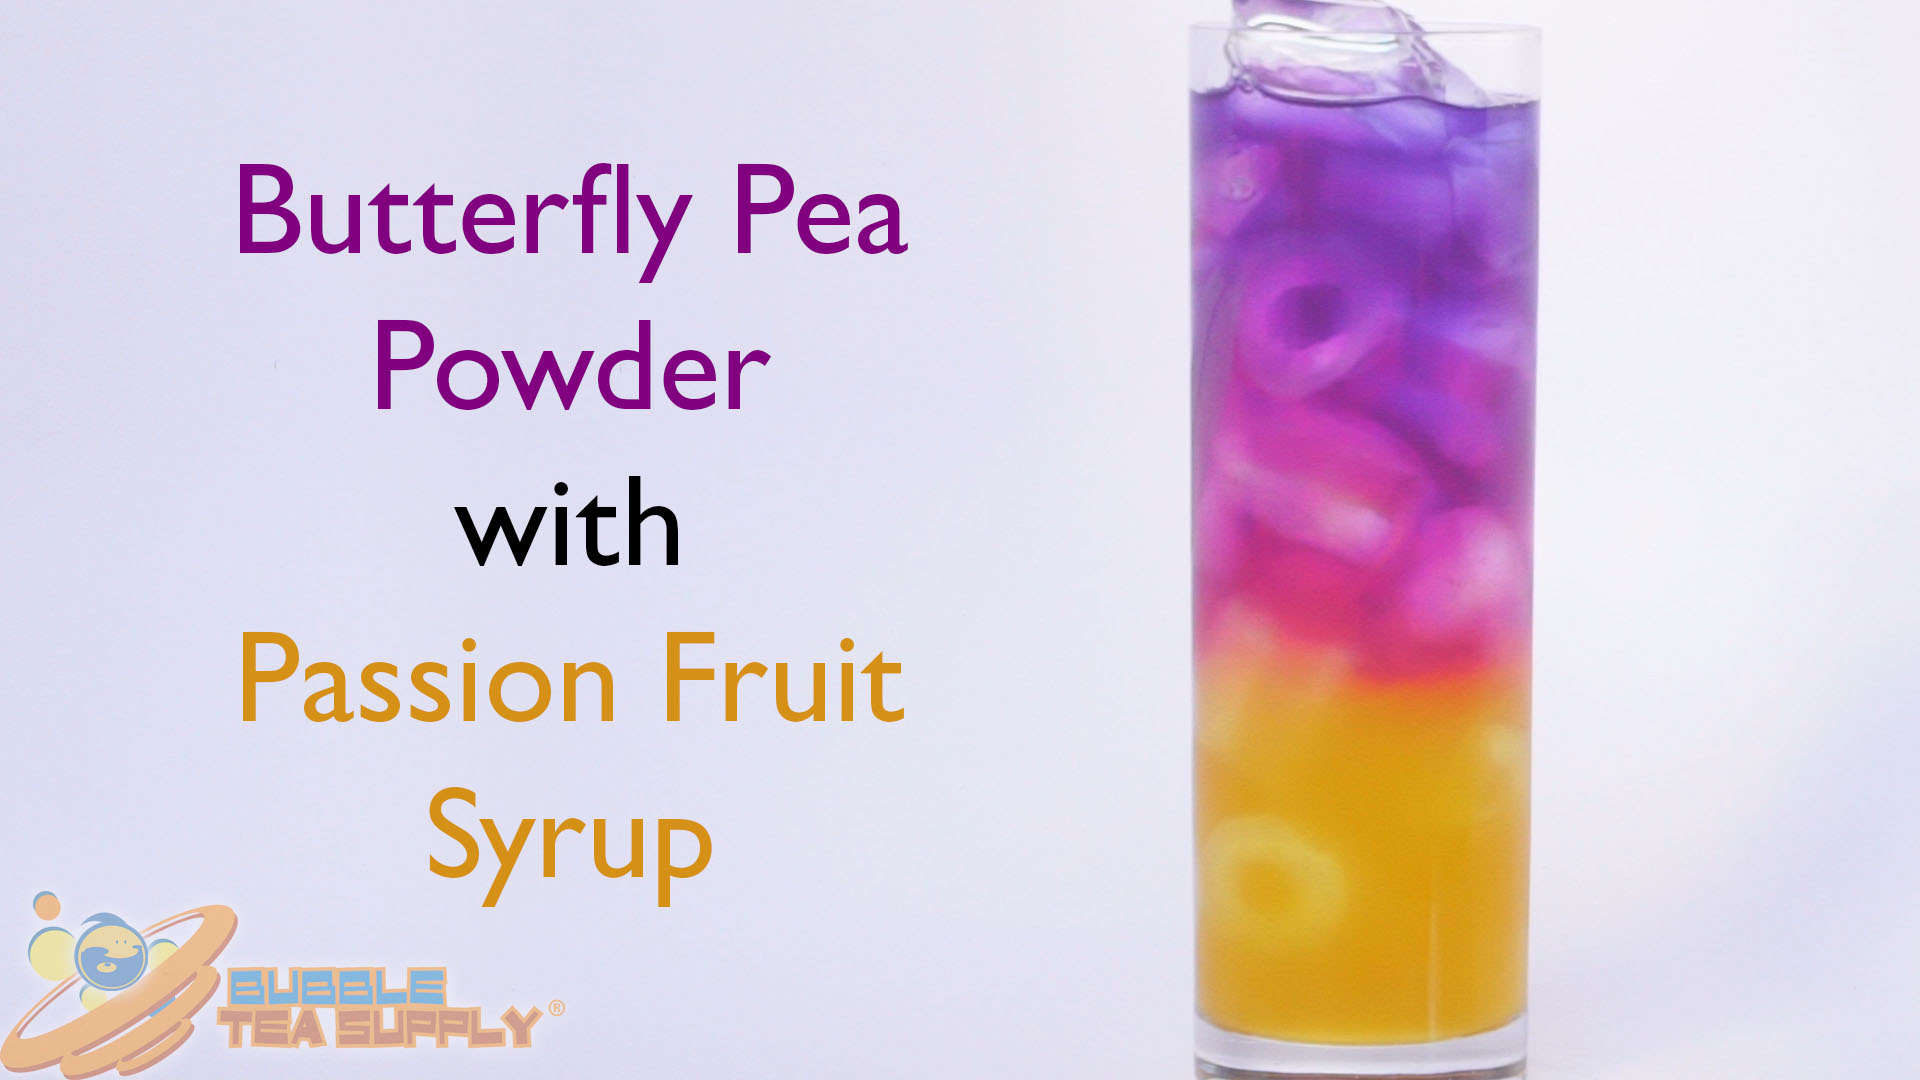 How to Make a Butterfly Pea with Passion Fruit Syrup Drink